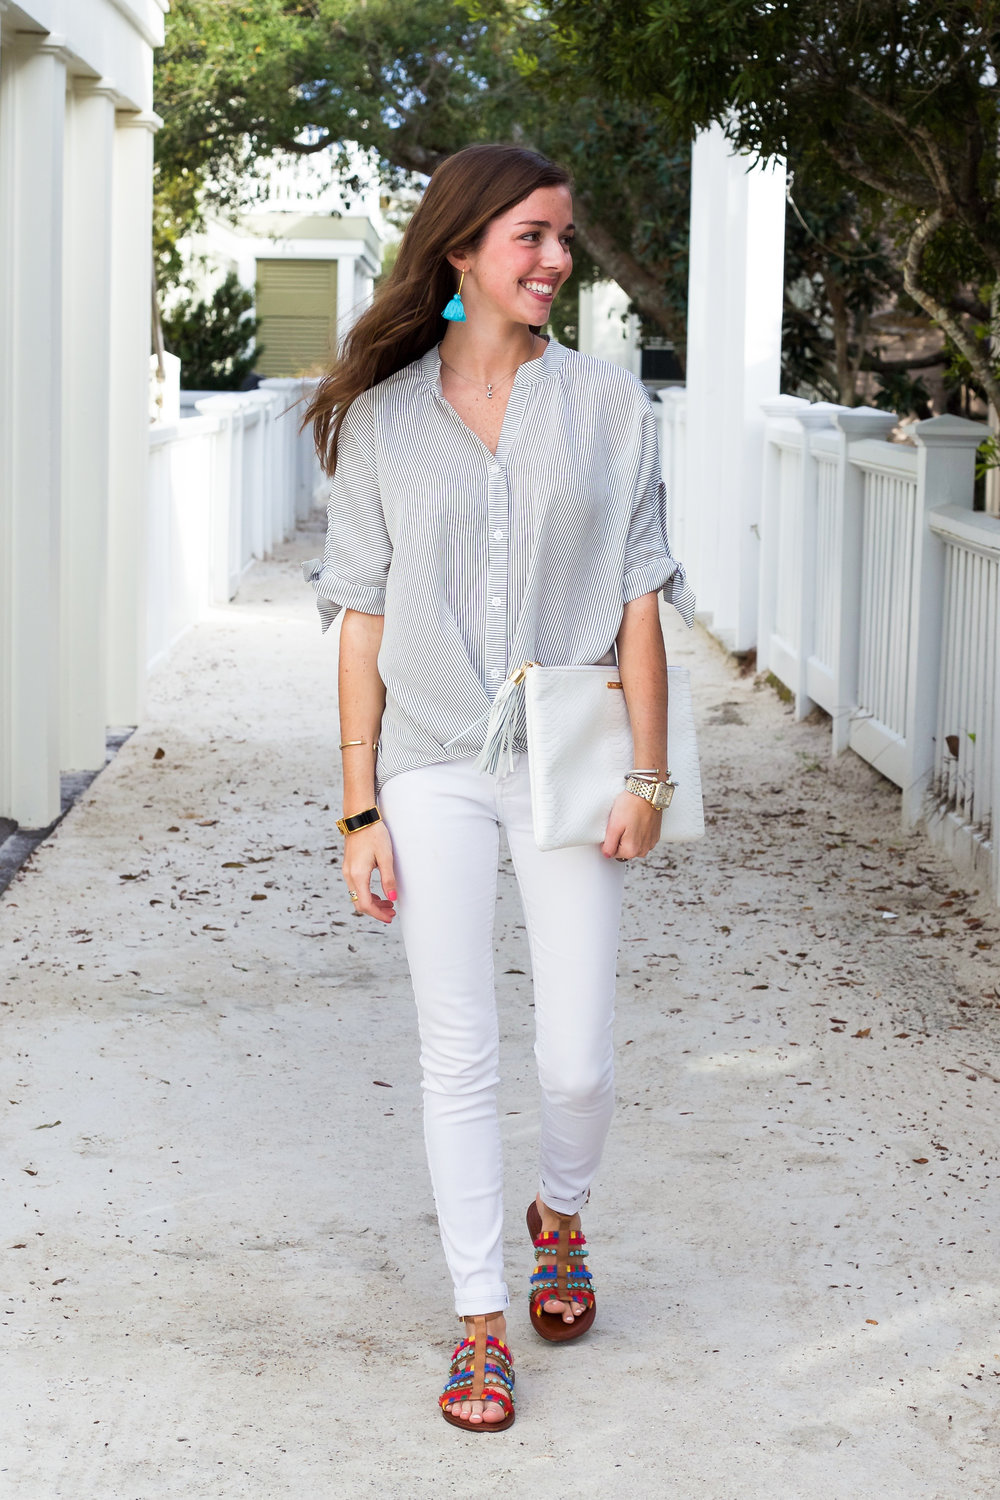 lcb style fashion blogger monkees seaside beach florida (5 of 15).jpg